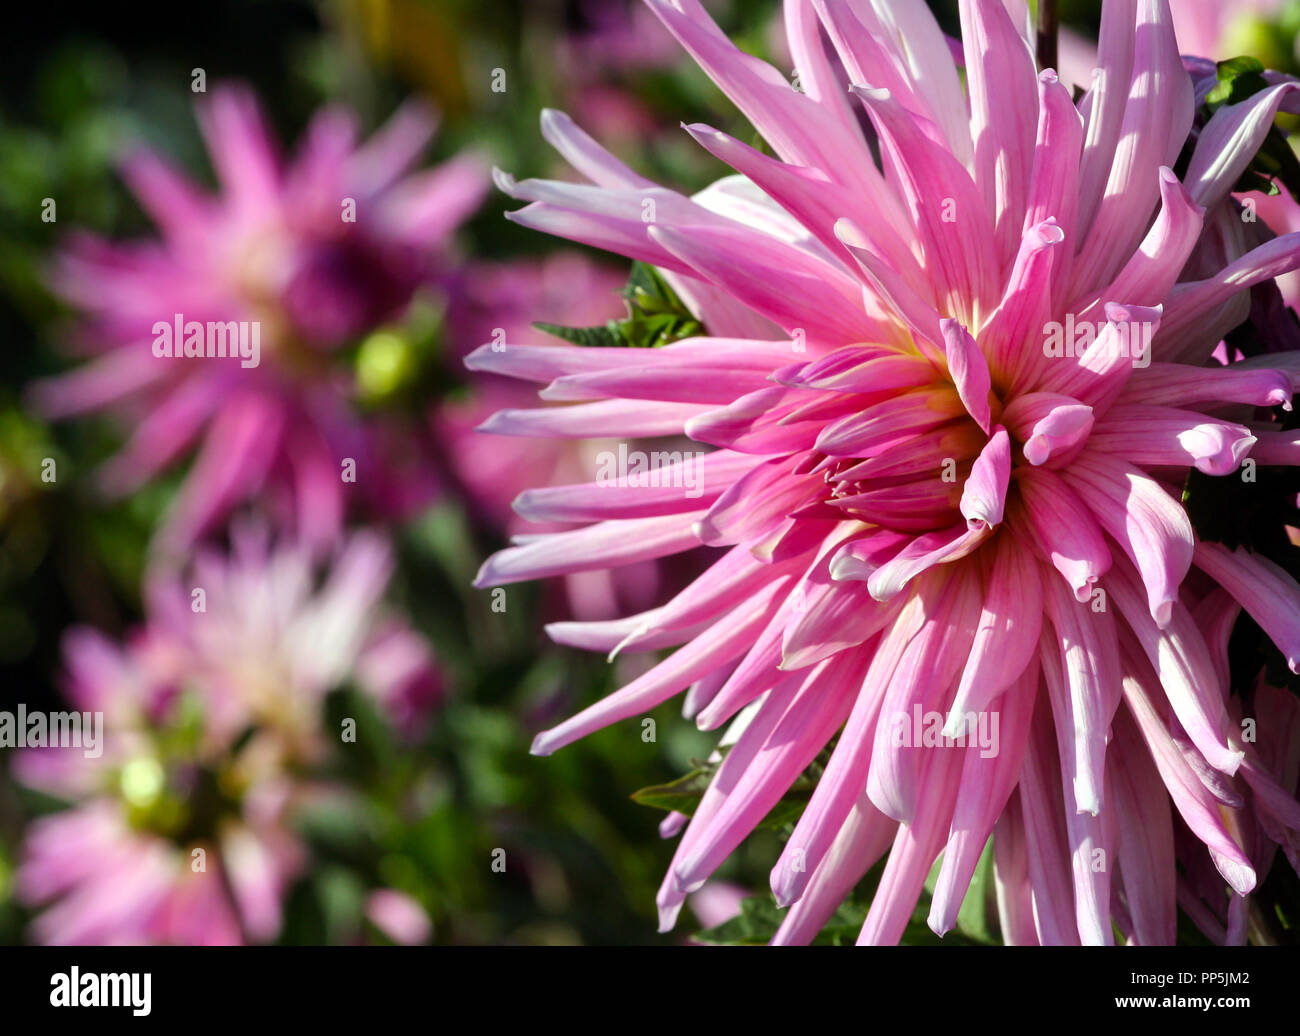 Long thin petals stock photos long thin petals stock images alamy variety of chrysanthemum amy k asteraceae plant one large pink flower with a yellowish core mightylinksfo